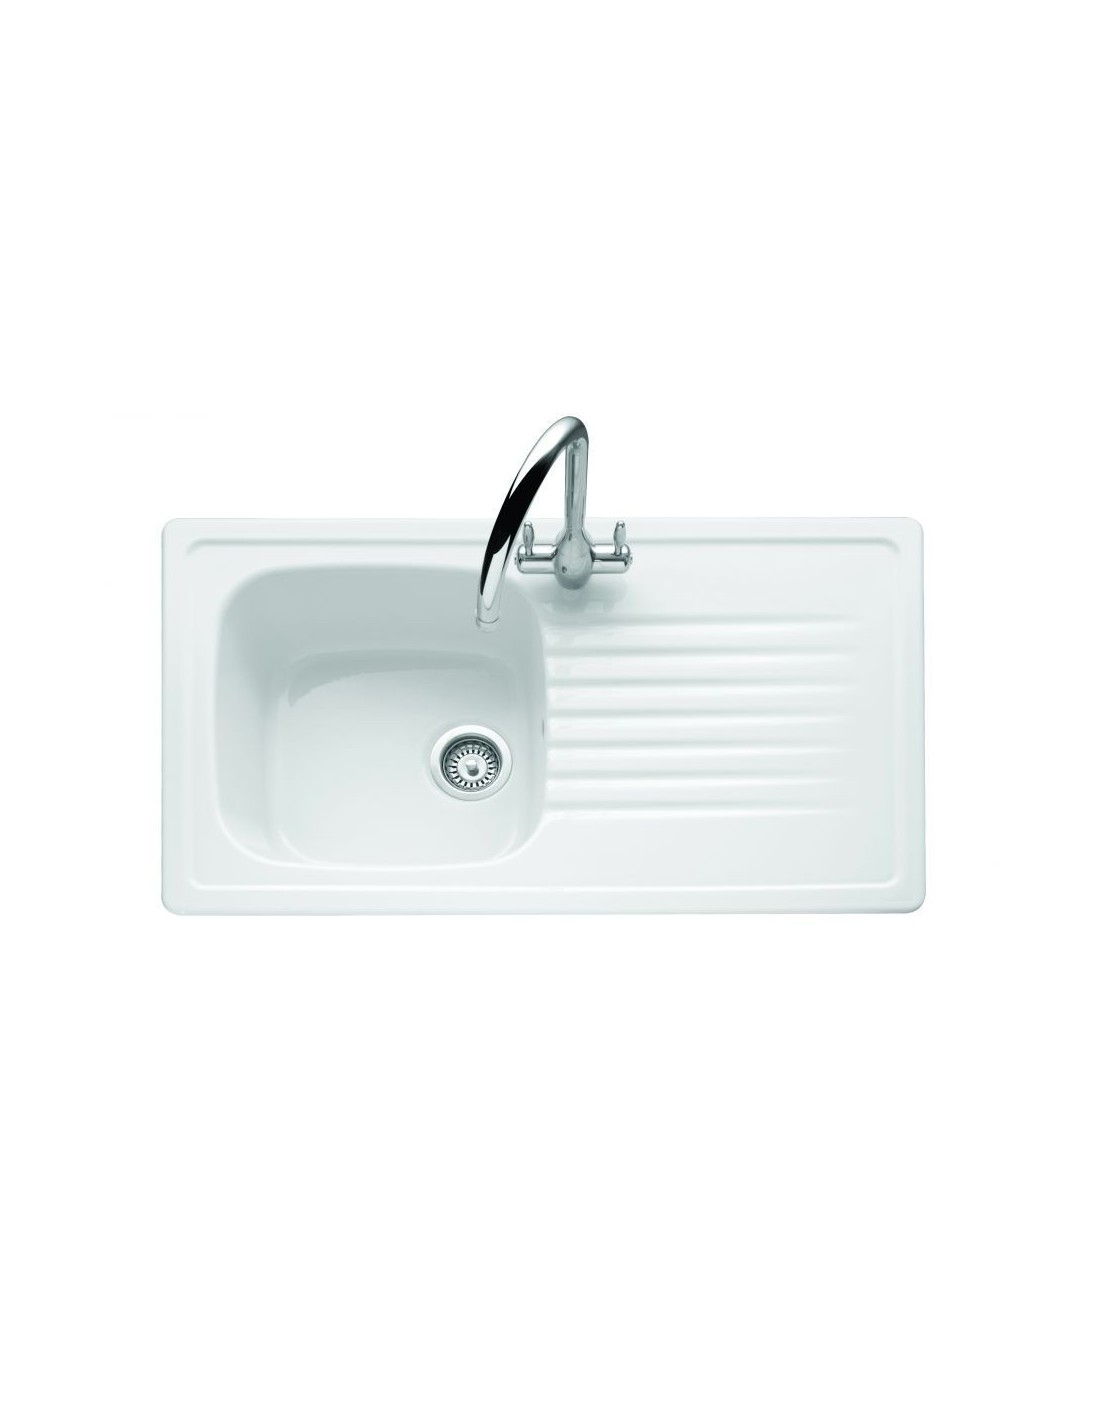 Ceramic Kitchen Sink With Drainer : ... & Boch Medici Ceramic White Kitchen Sink. Single Bowl & Drainer